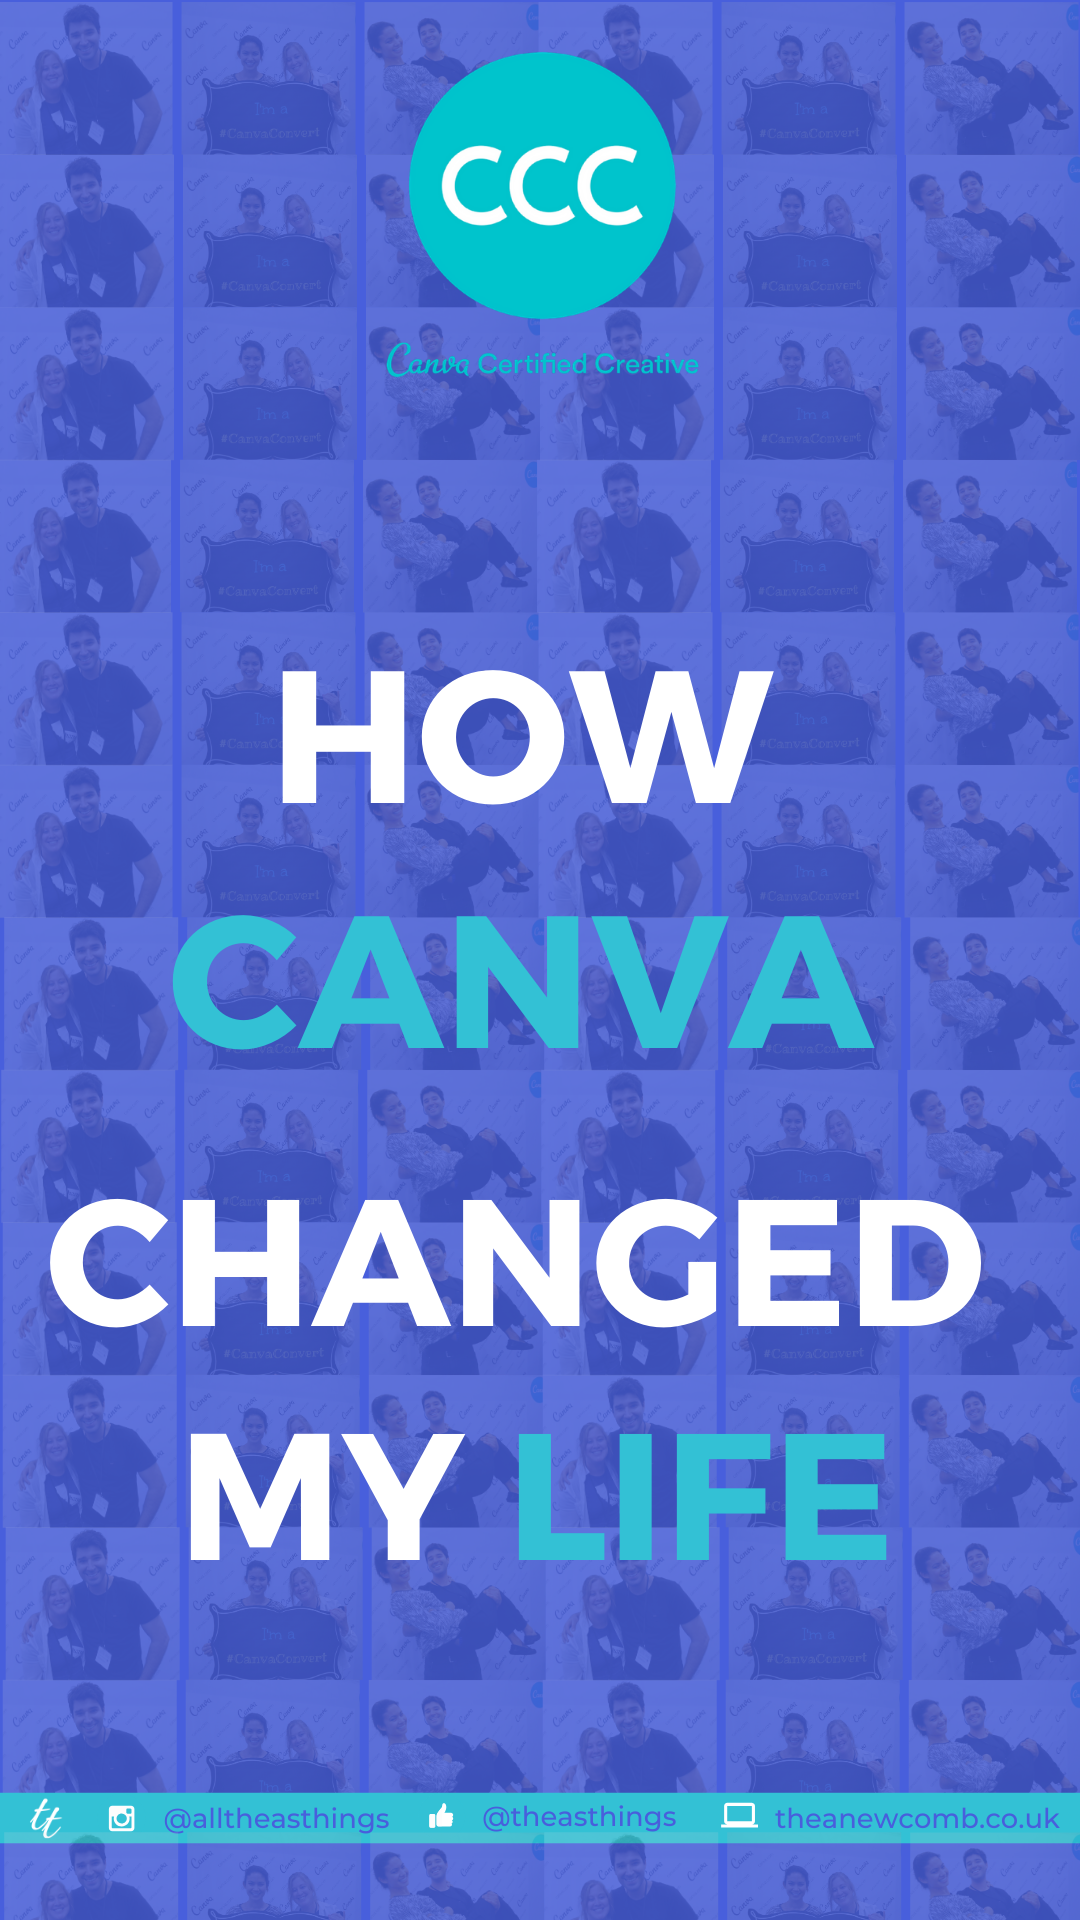 How Canva Changed my Life - Thea Newcomb - CCC